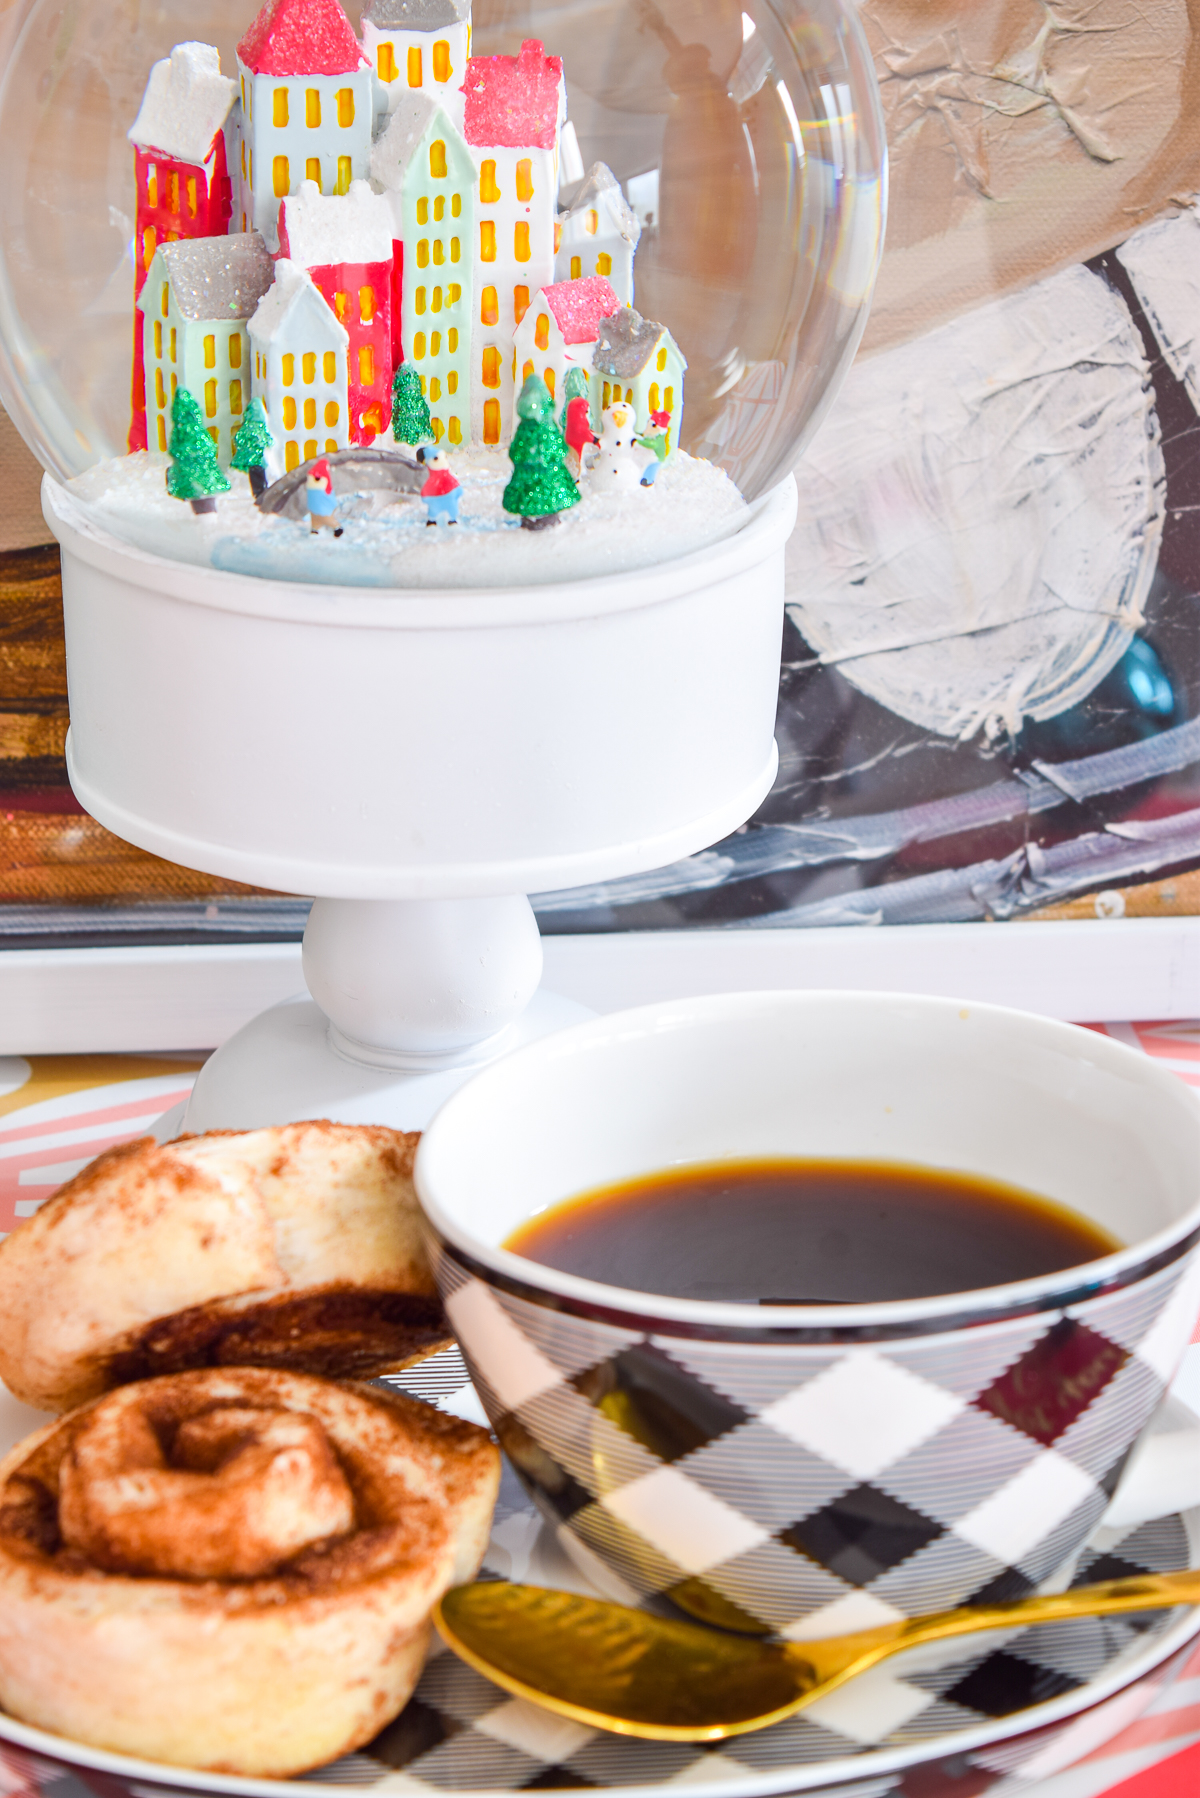 It happens EVERY year - your coworkers want to come by for a drink after work, your friend stops by for coffee (and a chit chat) unexpectedly, and you get roped into a cookie exchange of some kind. With a bit of planning, you can be ready for all 3 of those holiday entertaining scenarios - all you need is a trip to Homesense!